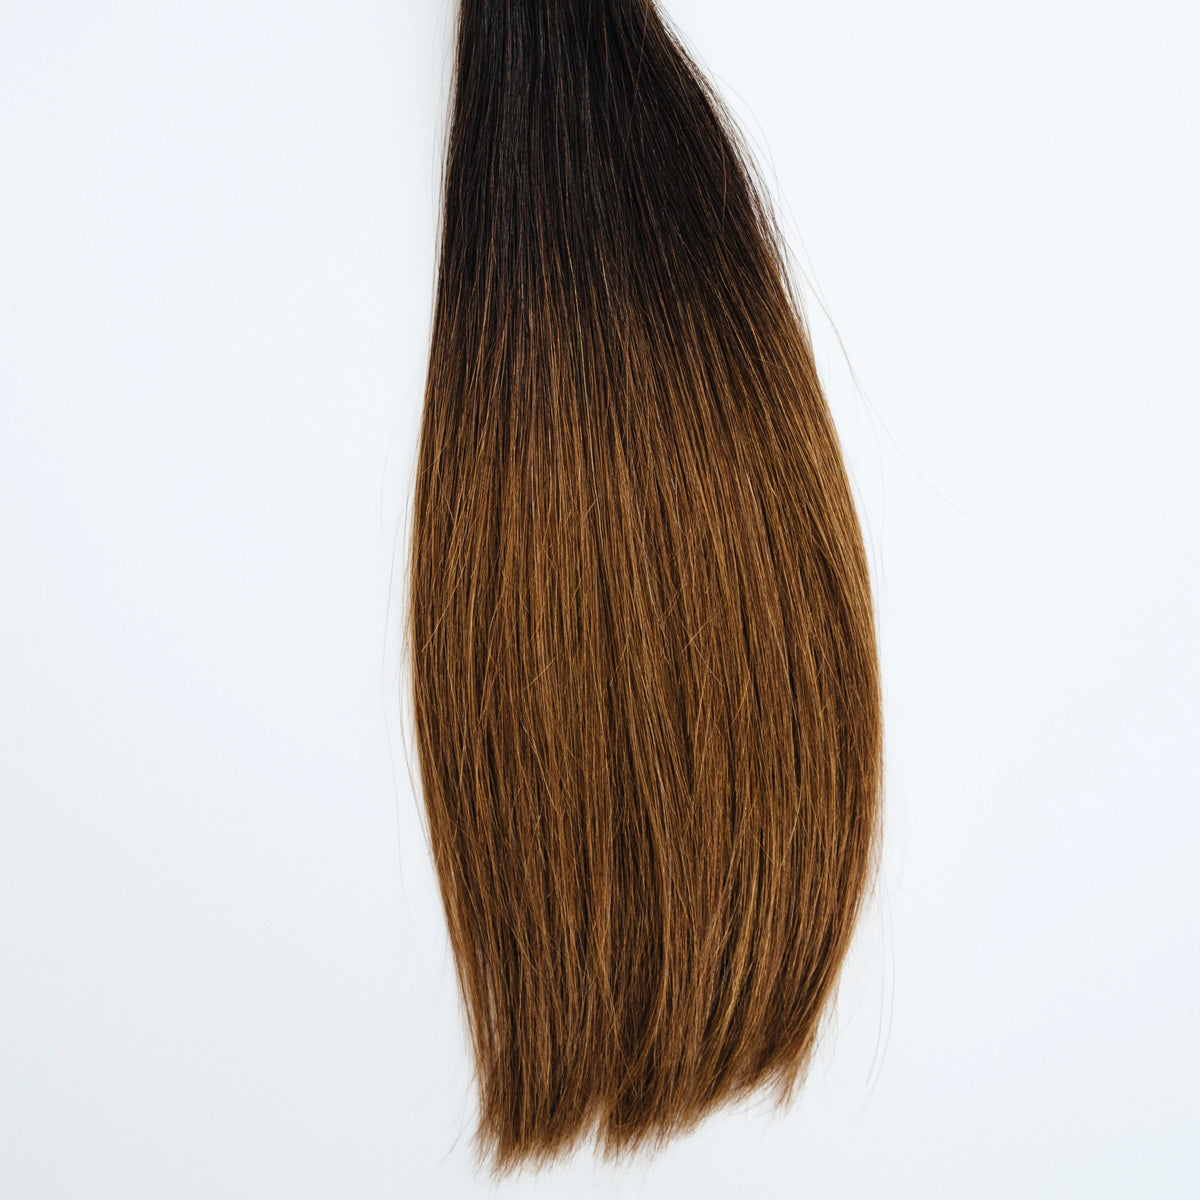 Laced Hair Clip-In Extensions Ombré #1B/5 (Caramel Latte)